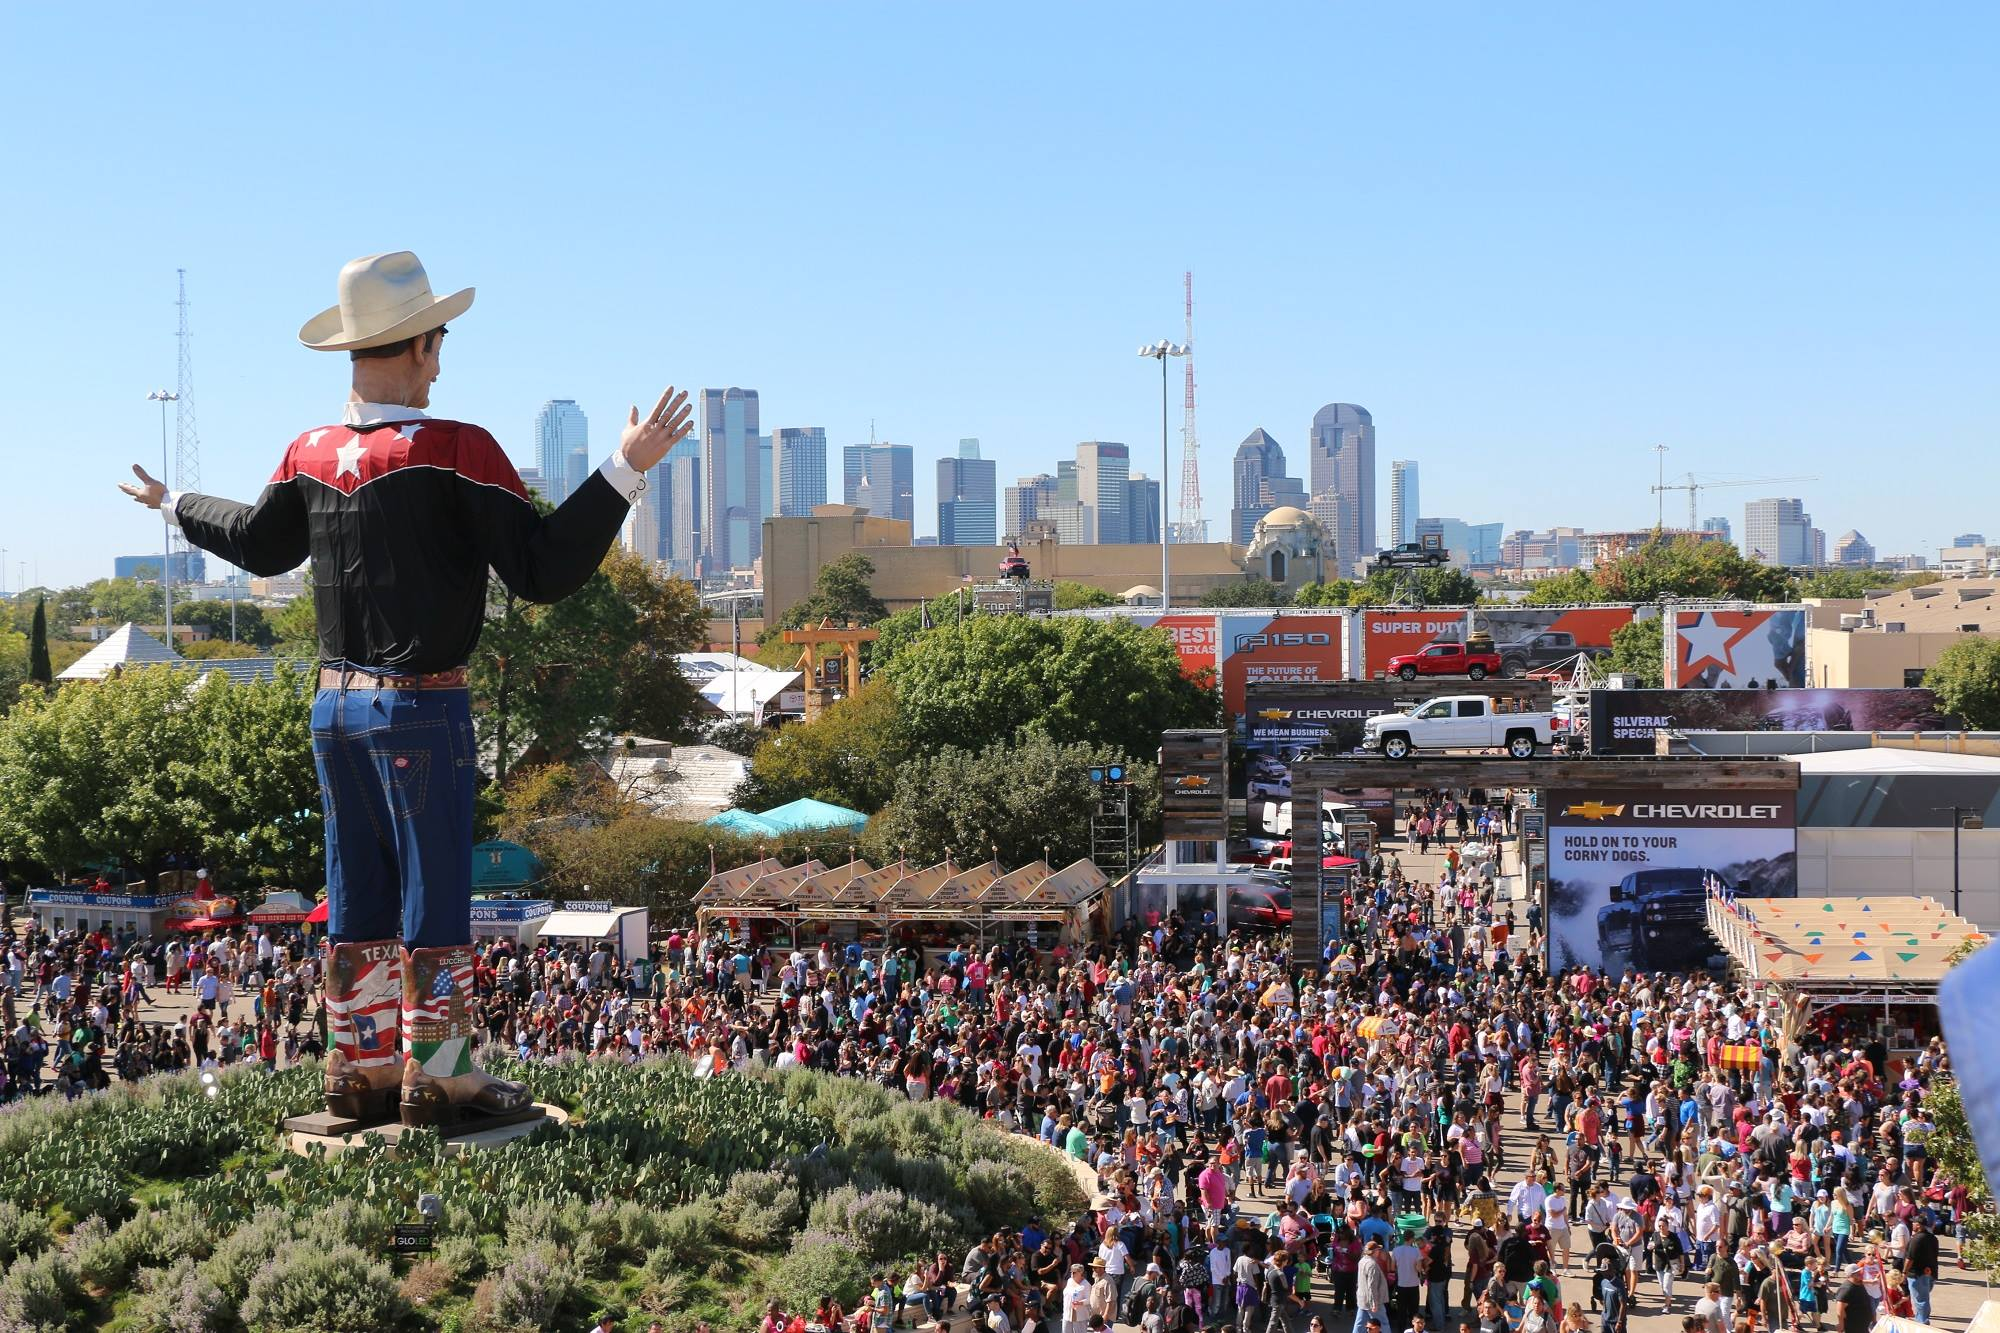 State fair of texas dates in Sydney